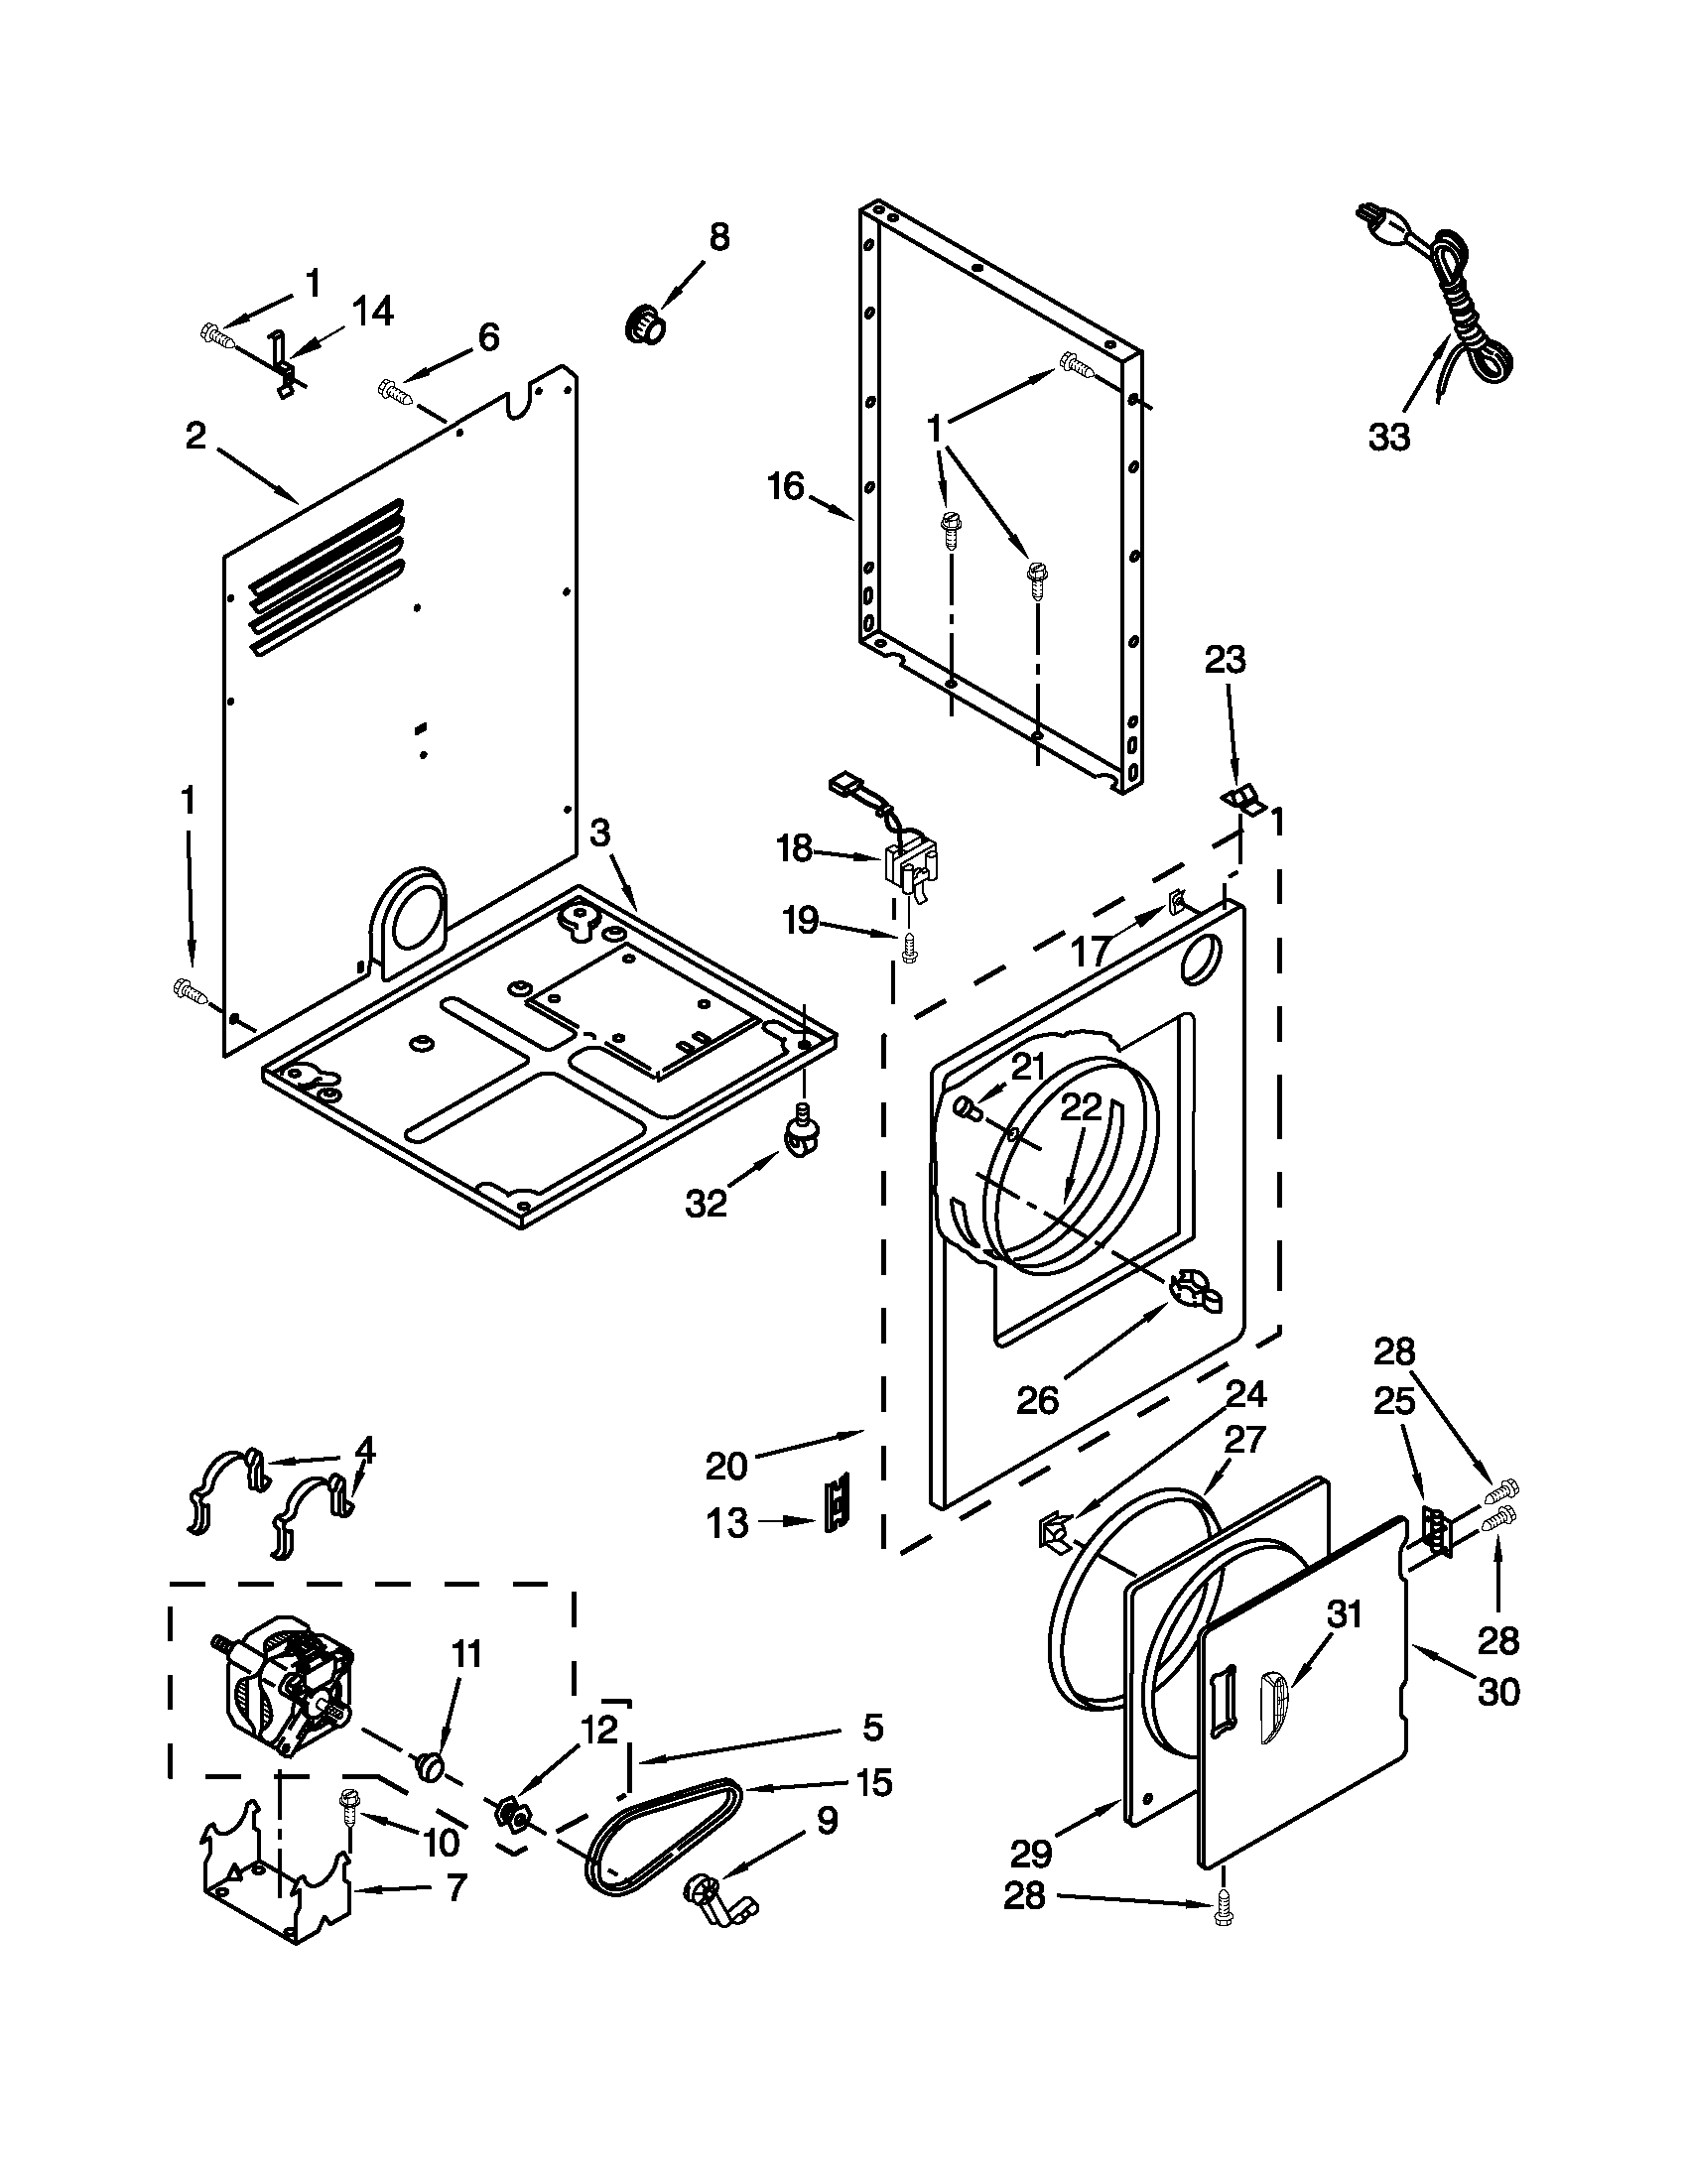 hight resolution of sears canada model 110c84722402 residential dryer genuine parts wiring diagram diagram and parts list for sears canada dryerparts